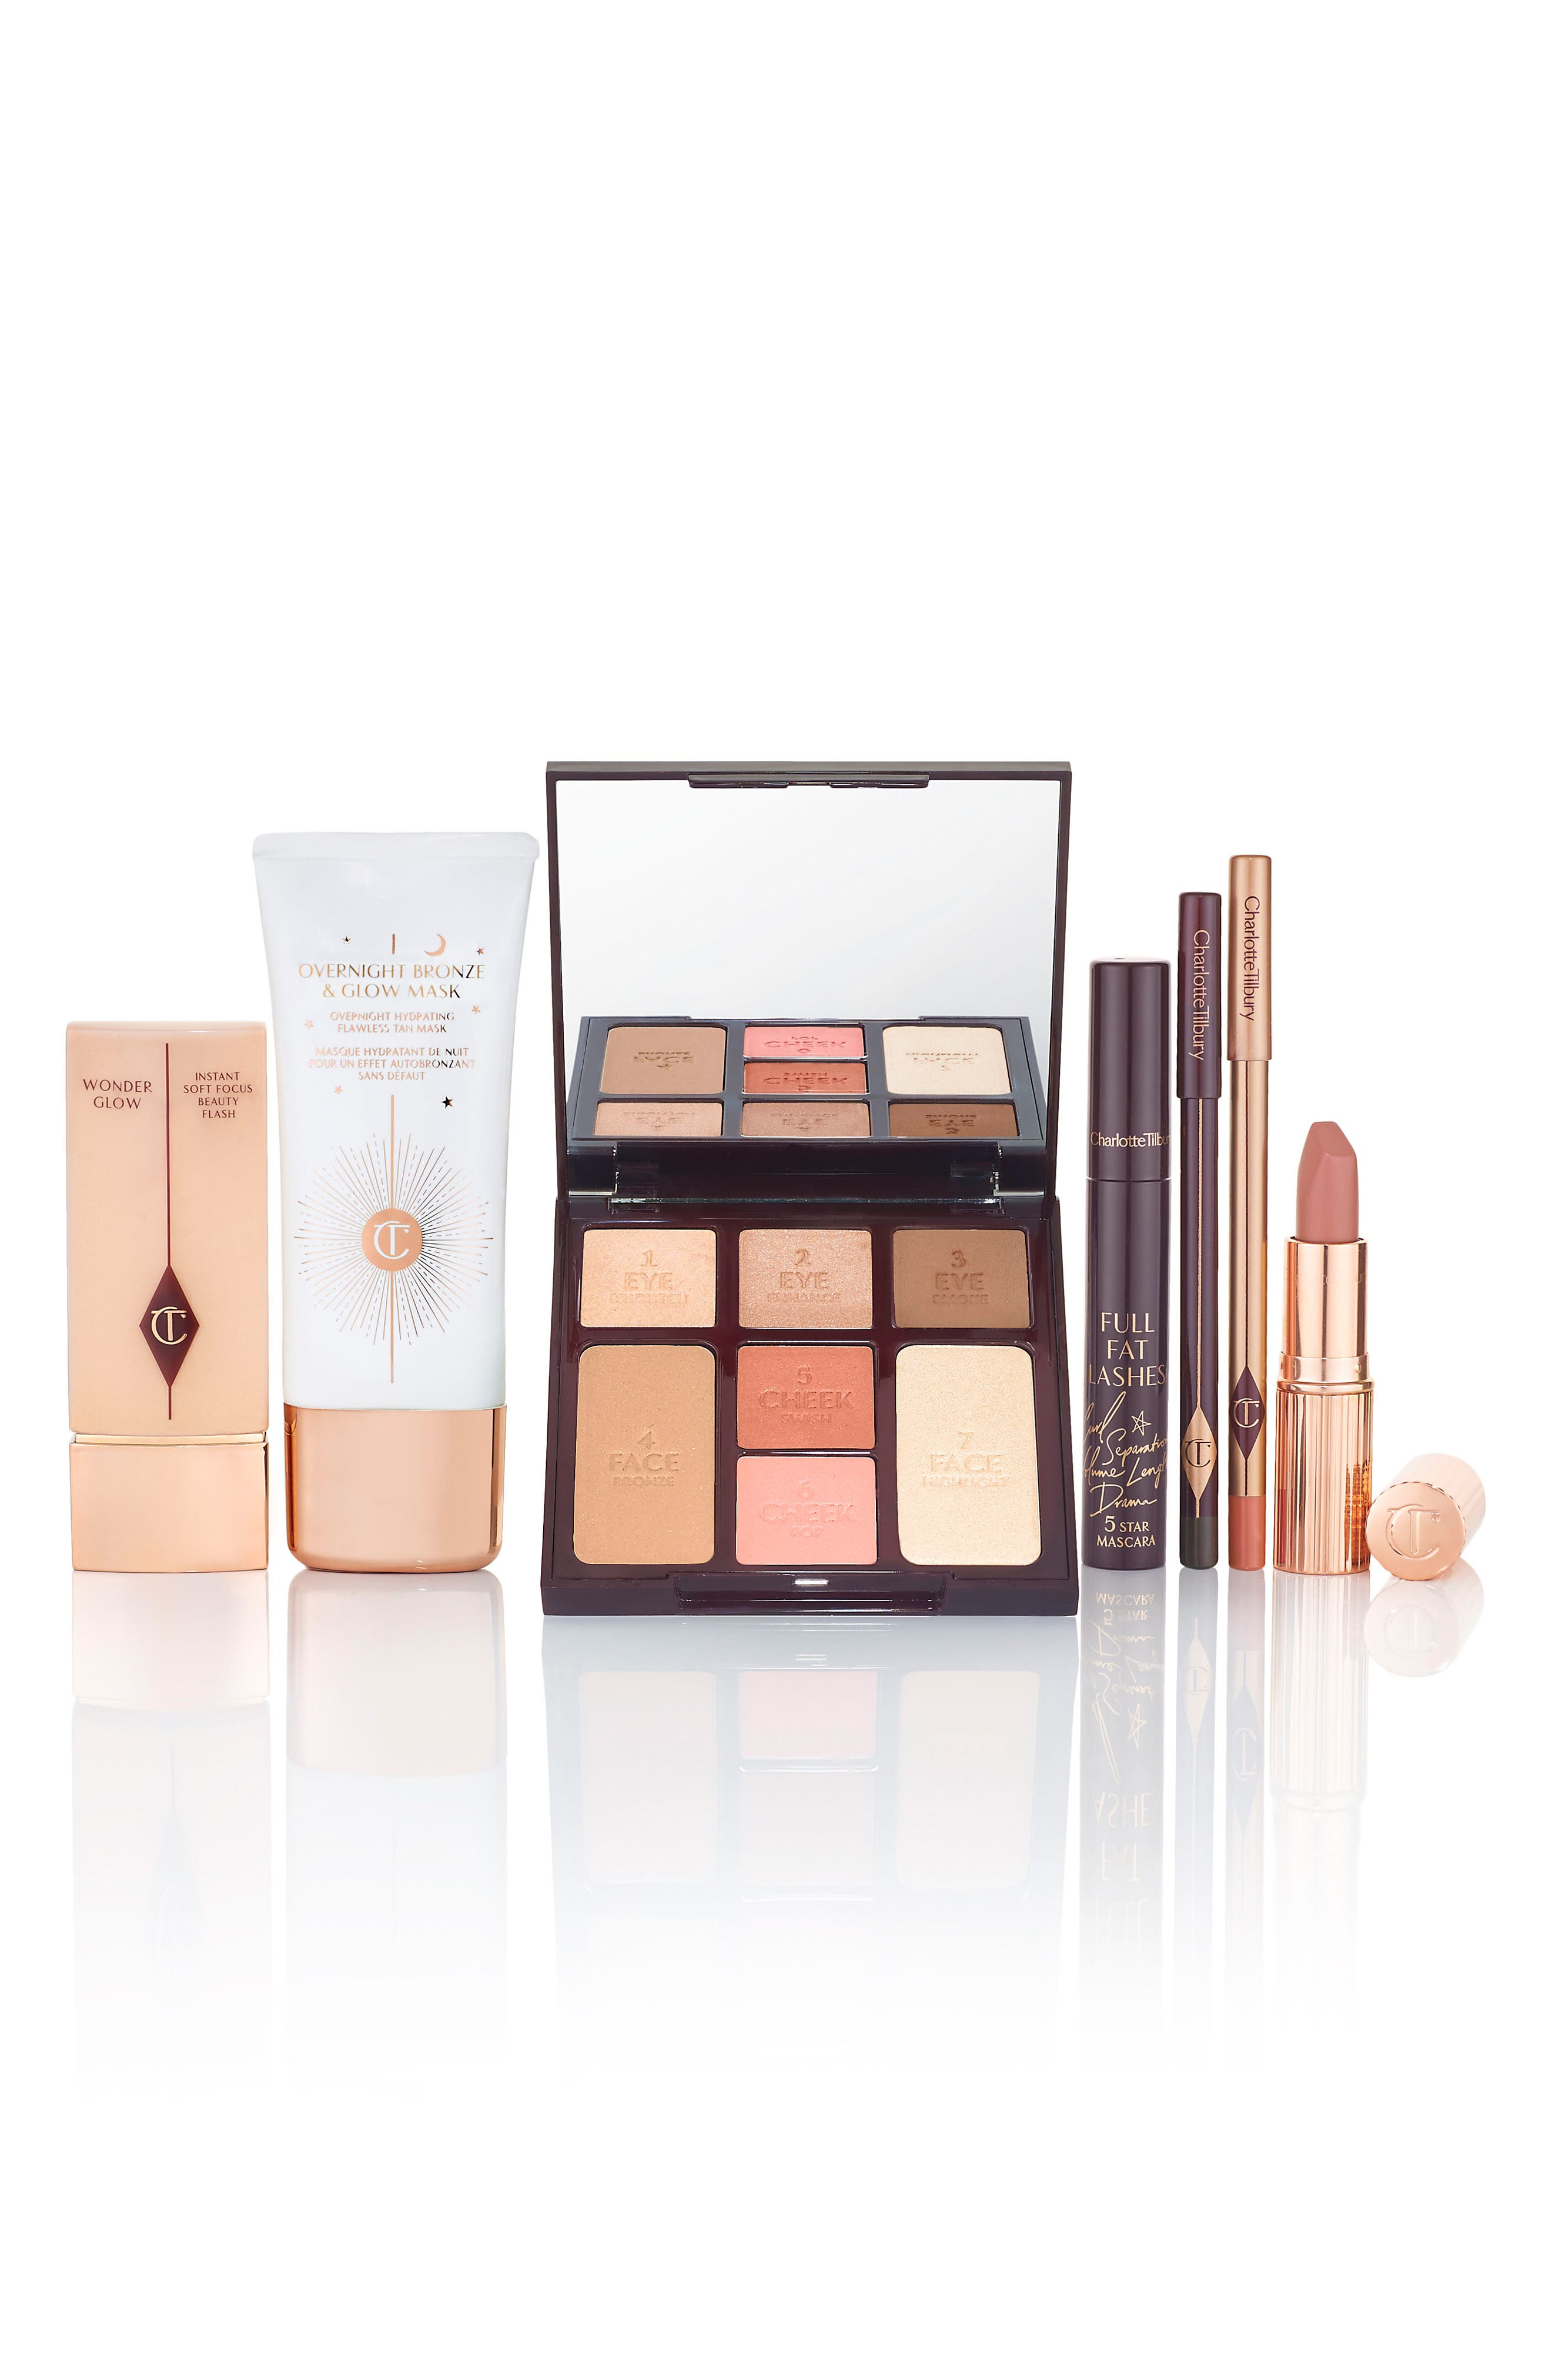 Charlotte Tilbury Beauty Glow Filter Look